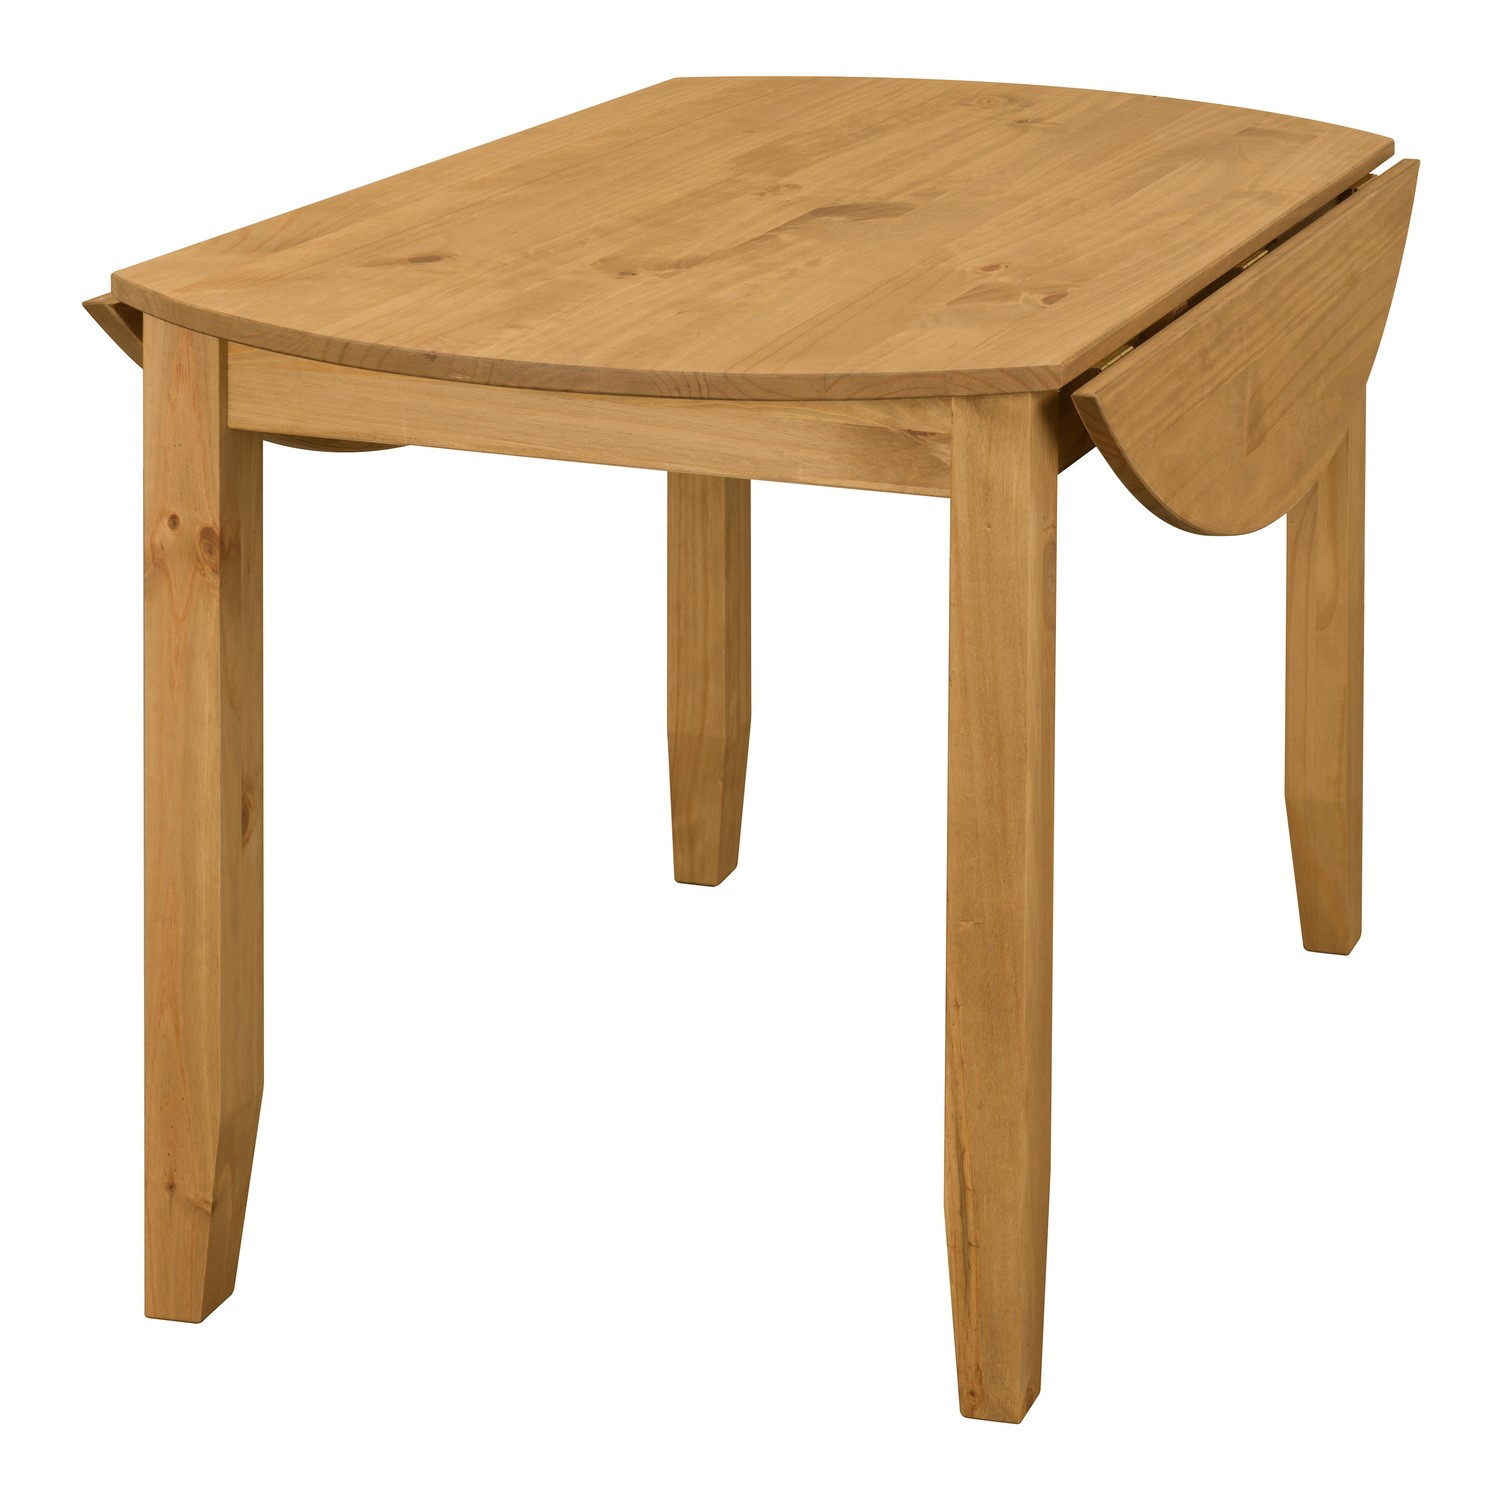 Fine Corona Mexican Solid Pine Round Drop Leaf Dining Table Set With 4 Chairs Ocoug Best Dining Table And Chair Ideas Images Ocougorg